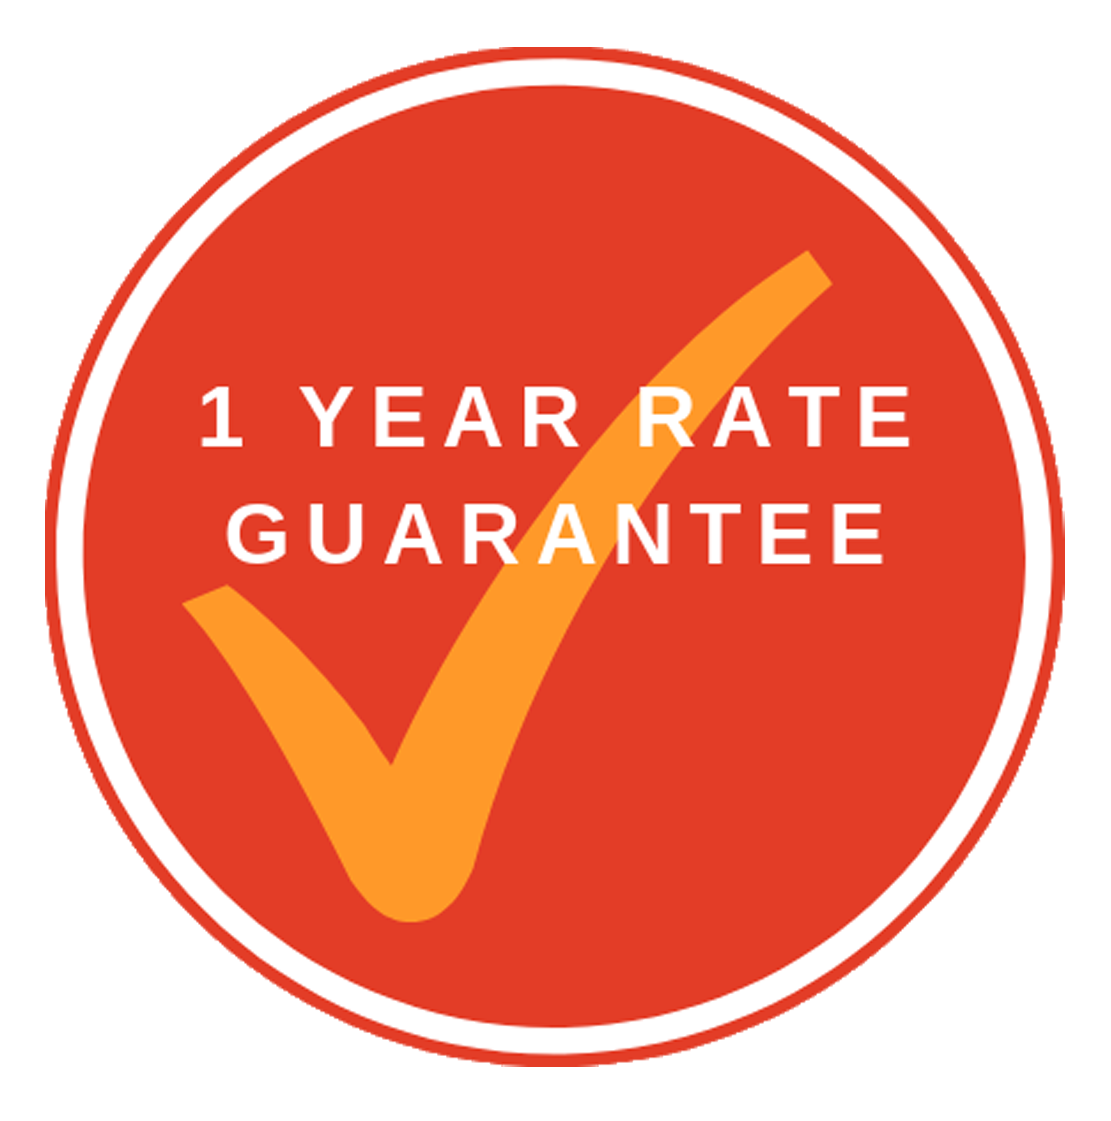 Money Saver Mini Storage - Oregon City I 1 Year Rate Guarantee!